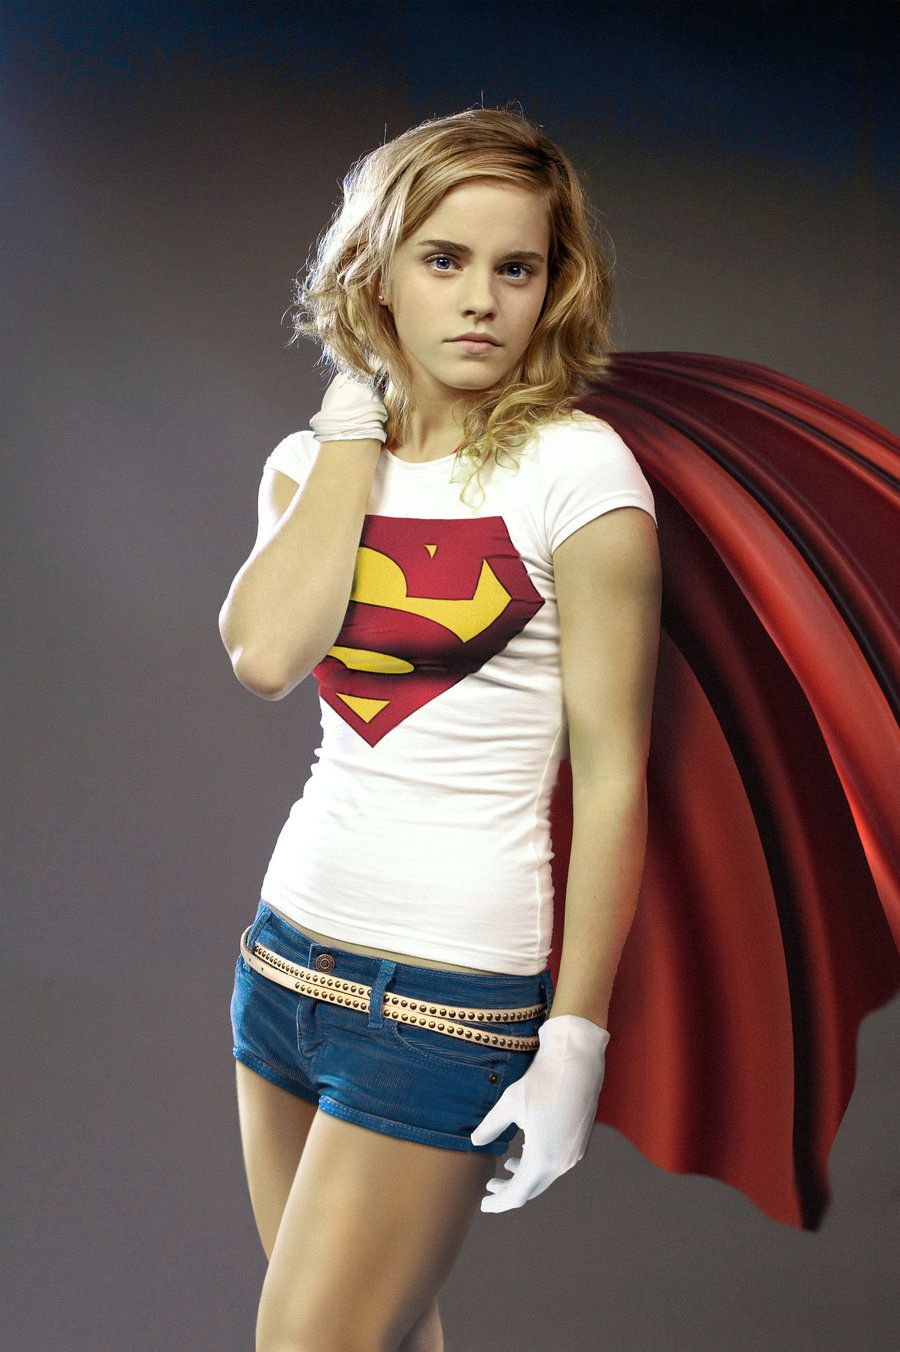 Pin On Supergirl-6517